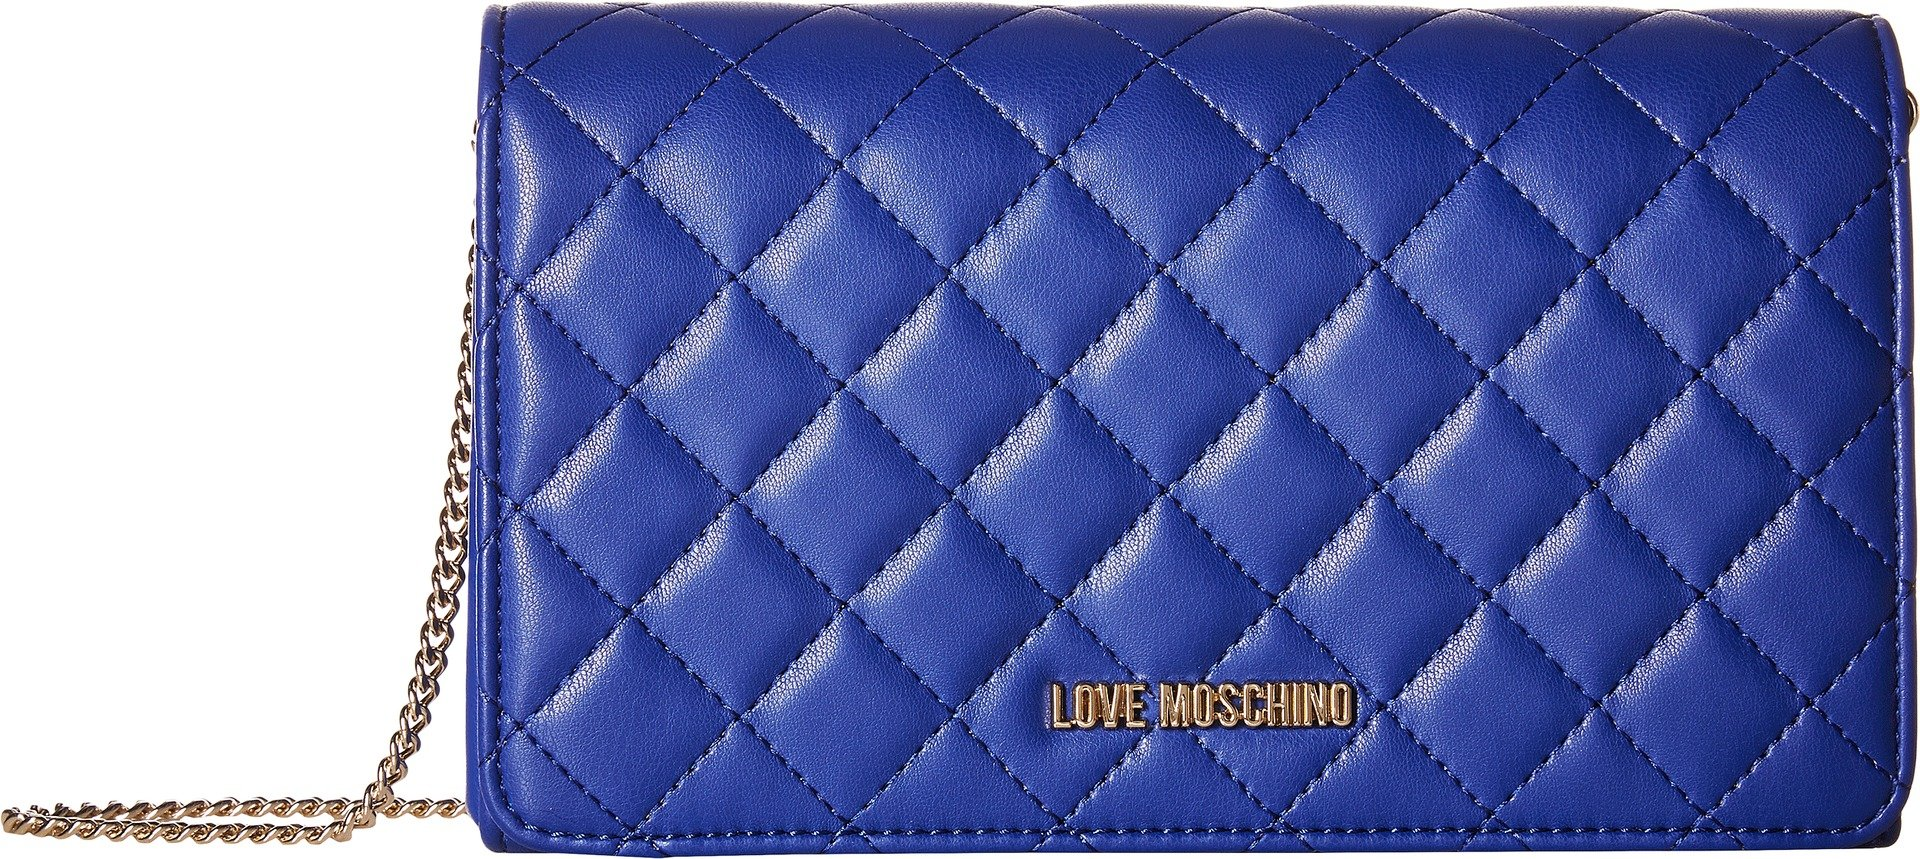 LOVE Moschino Women's Quilted Evening Clutch Navy One Size